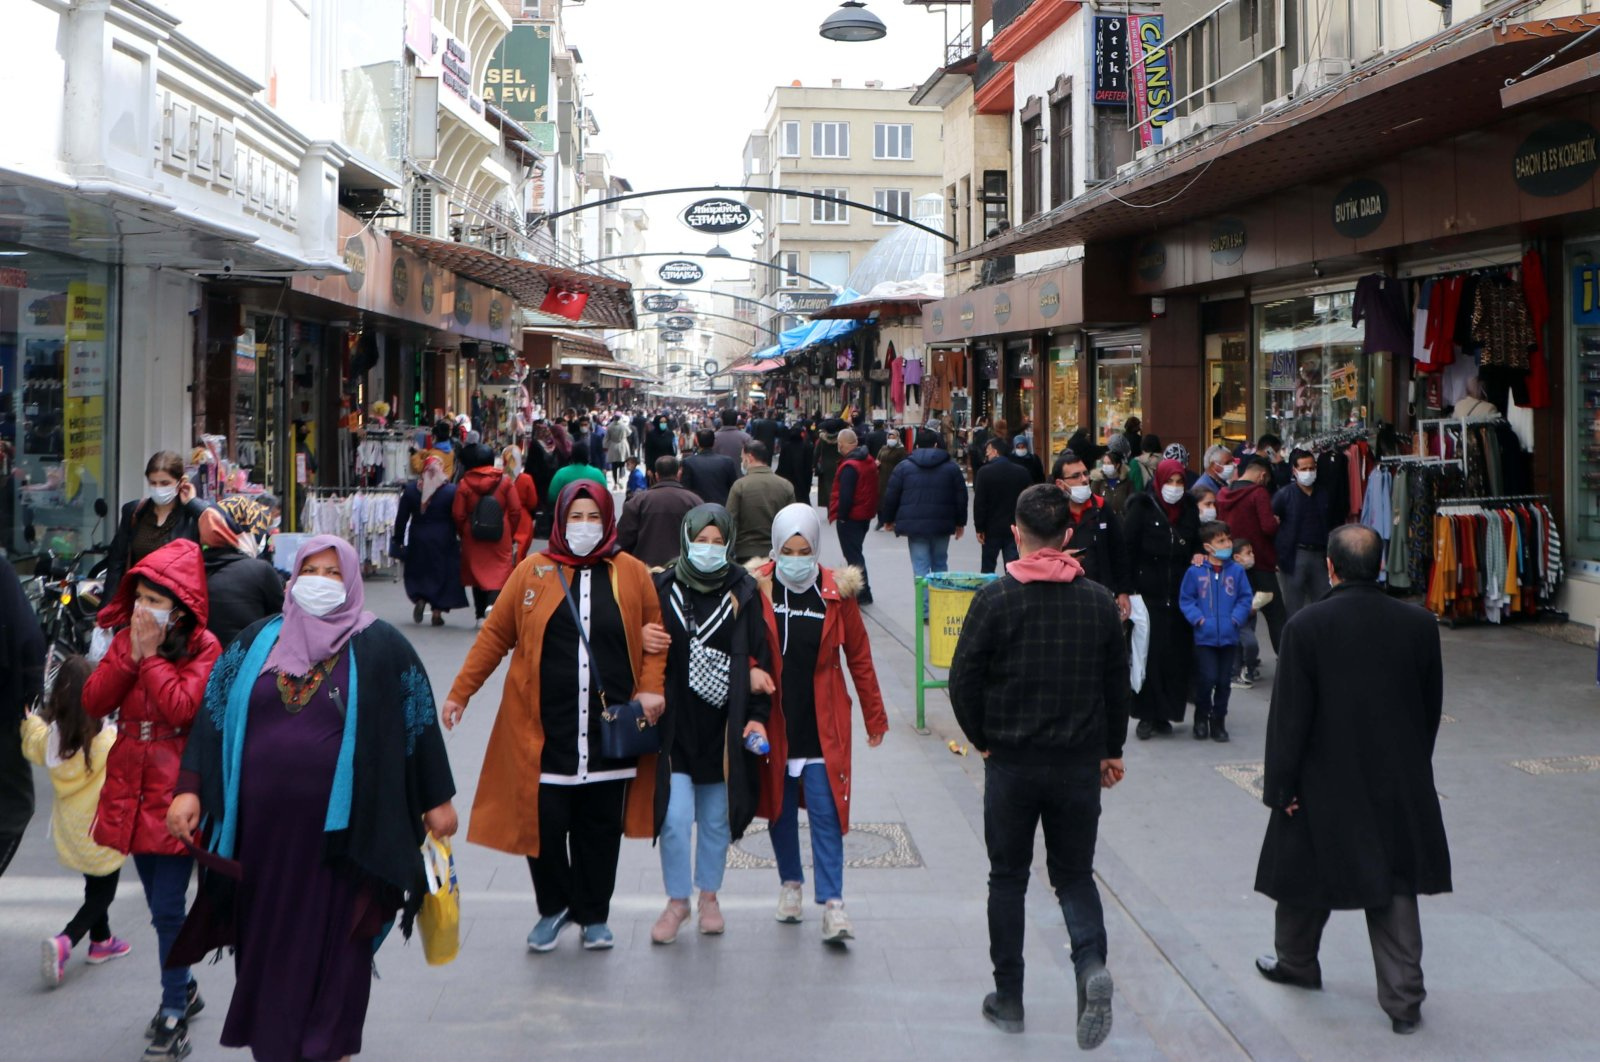 People wearing protective masks walk on a street in Gaziantep, southern Turkey, March 10, 2021. (DHA PHOTO)